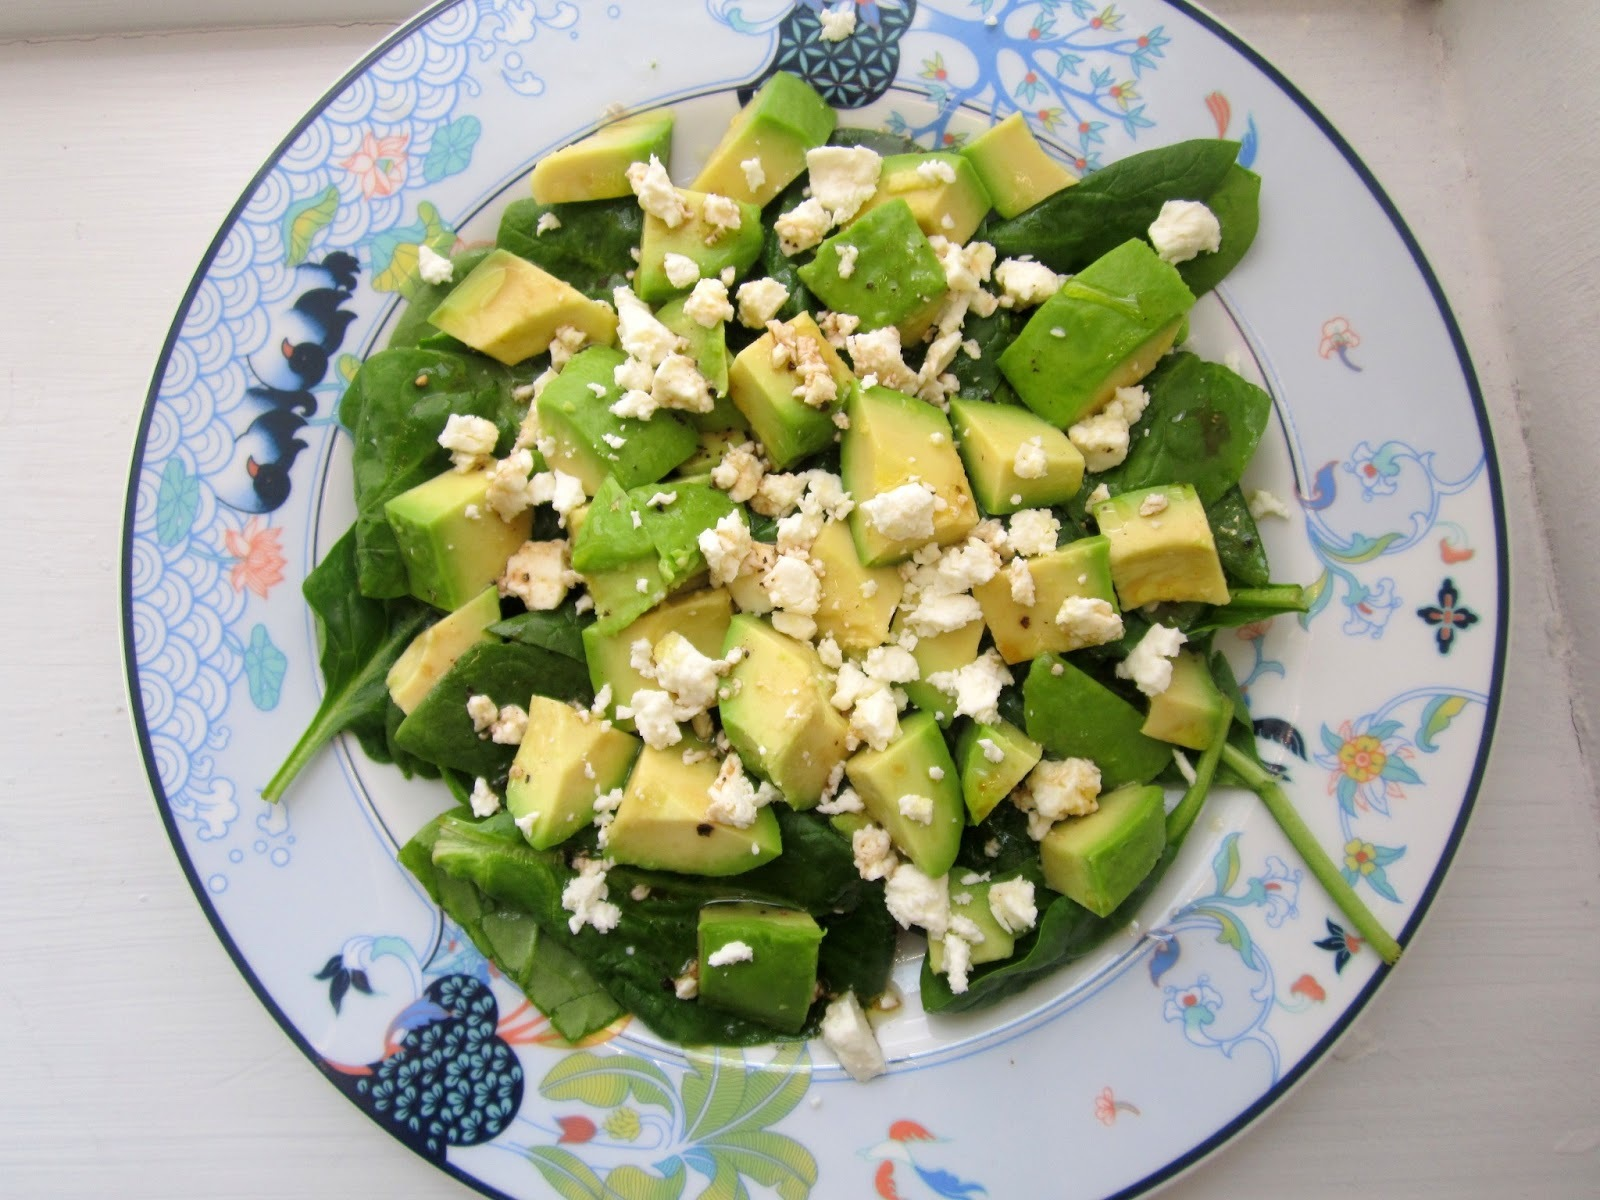 Spinat avocado salat m. feta og citrusdressing